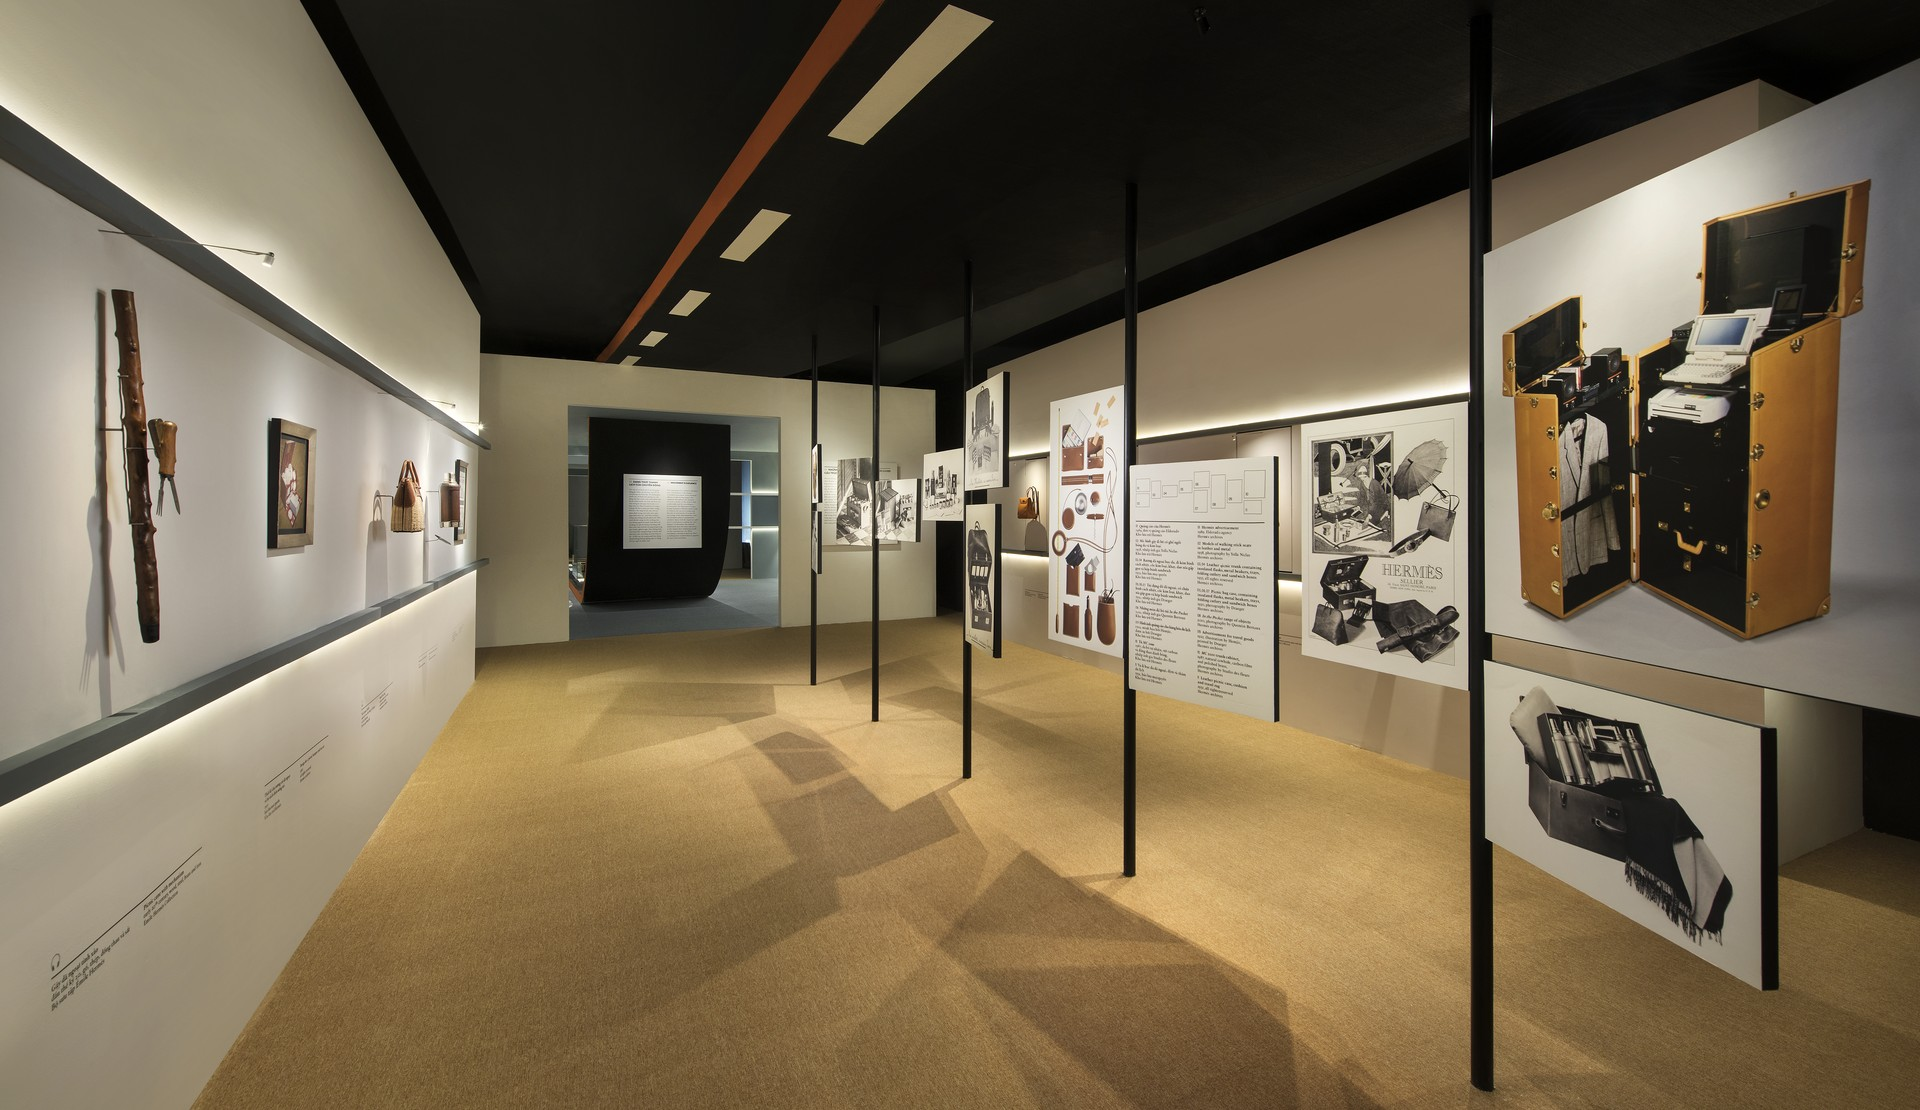 HERITAGE OF HERMÈS IS ON DISPLAY FOR THE FIRST TIME IN HANOI